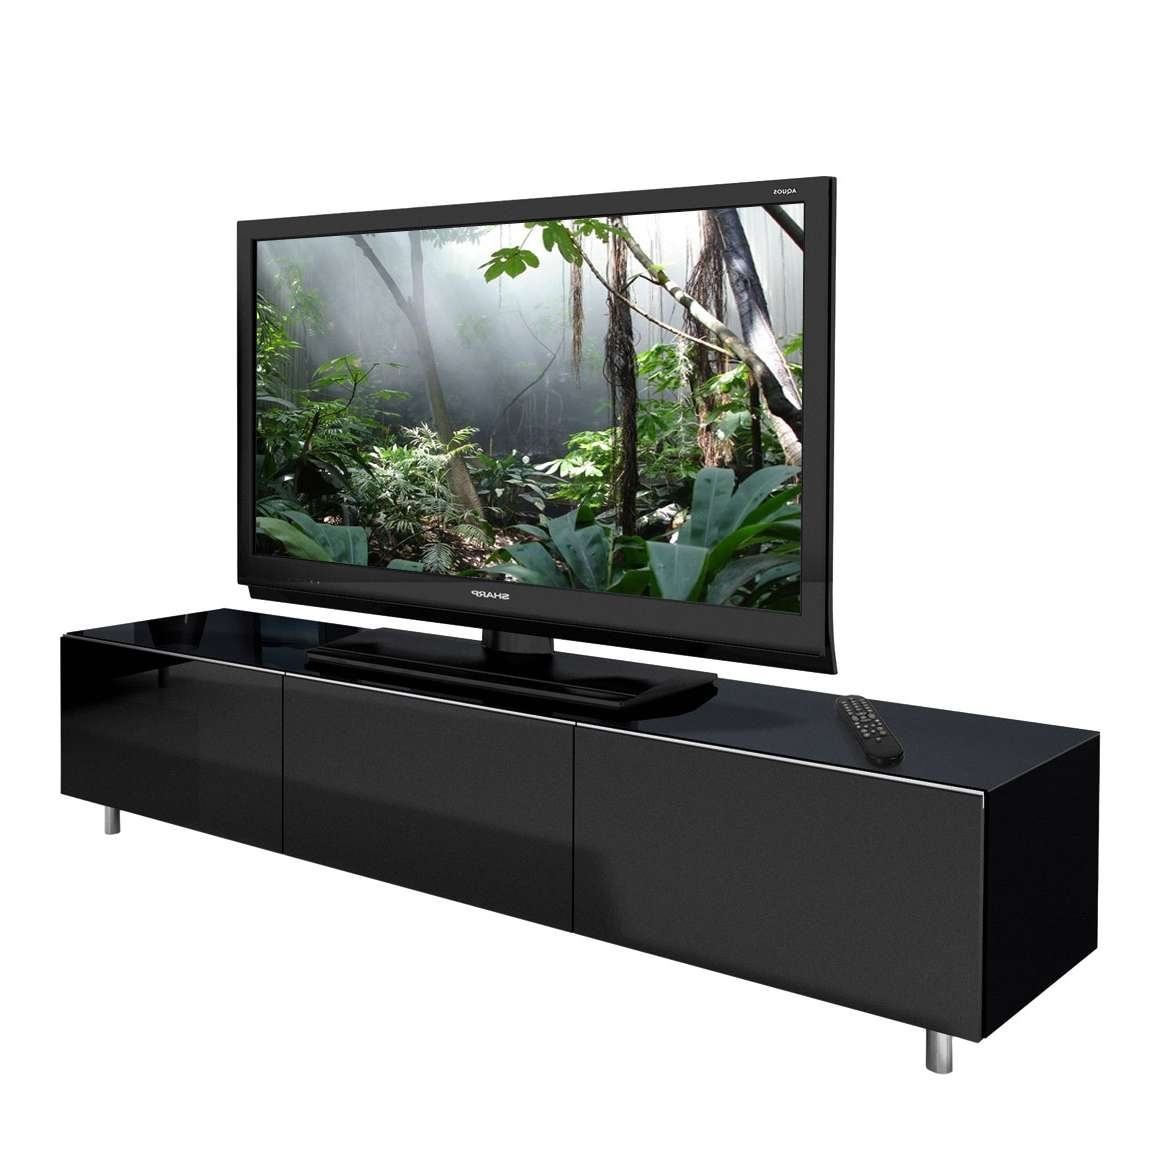 Spectral Just Racks Jrl1650s Gloss Black Tv Cabinet – Just Racks With Tv Stands Black Gloss (View 2 of 15)